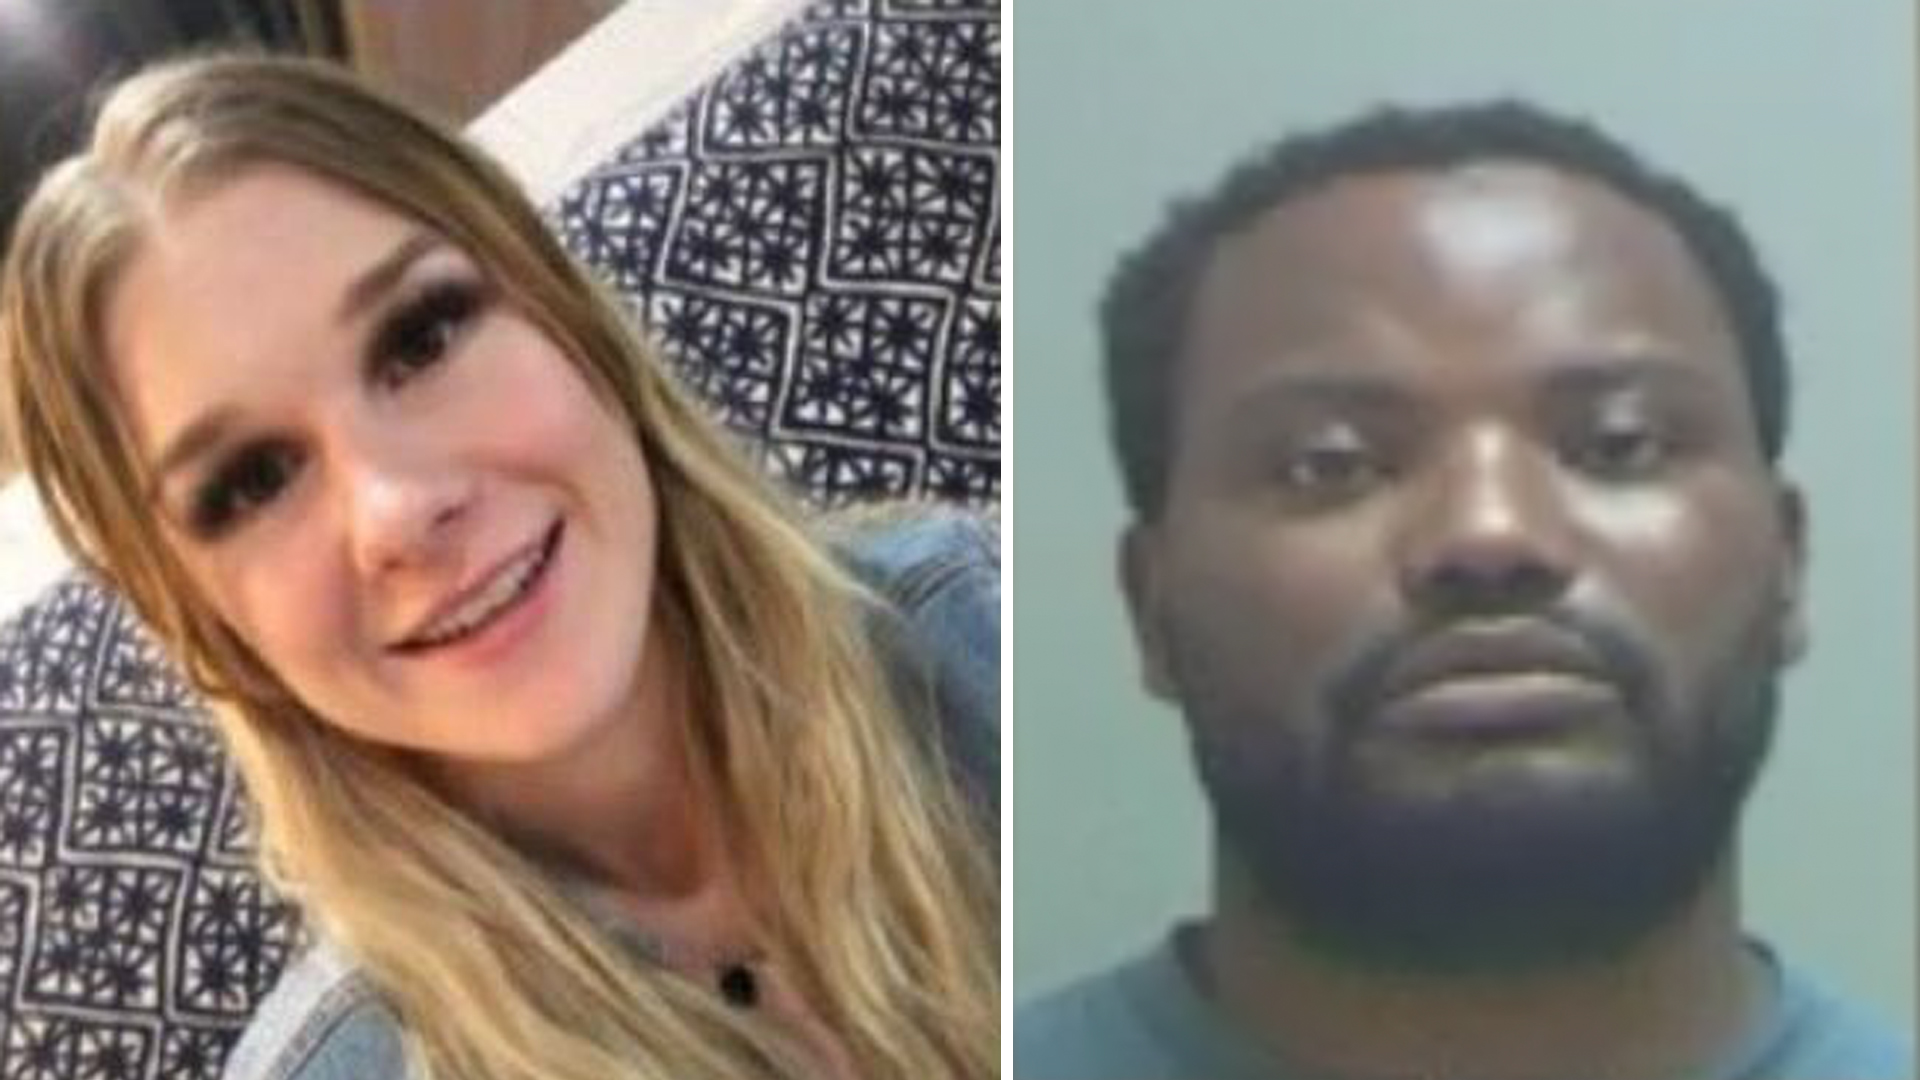 MacKenzie Lueck is seen in an undated photo provided by Salt Lake City police. On the right, Ayoola Ajayi is seen in an undated photo. (Credit: KSTU via CNN)